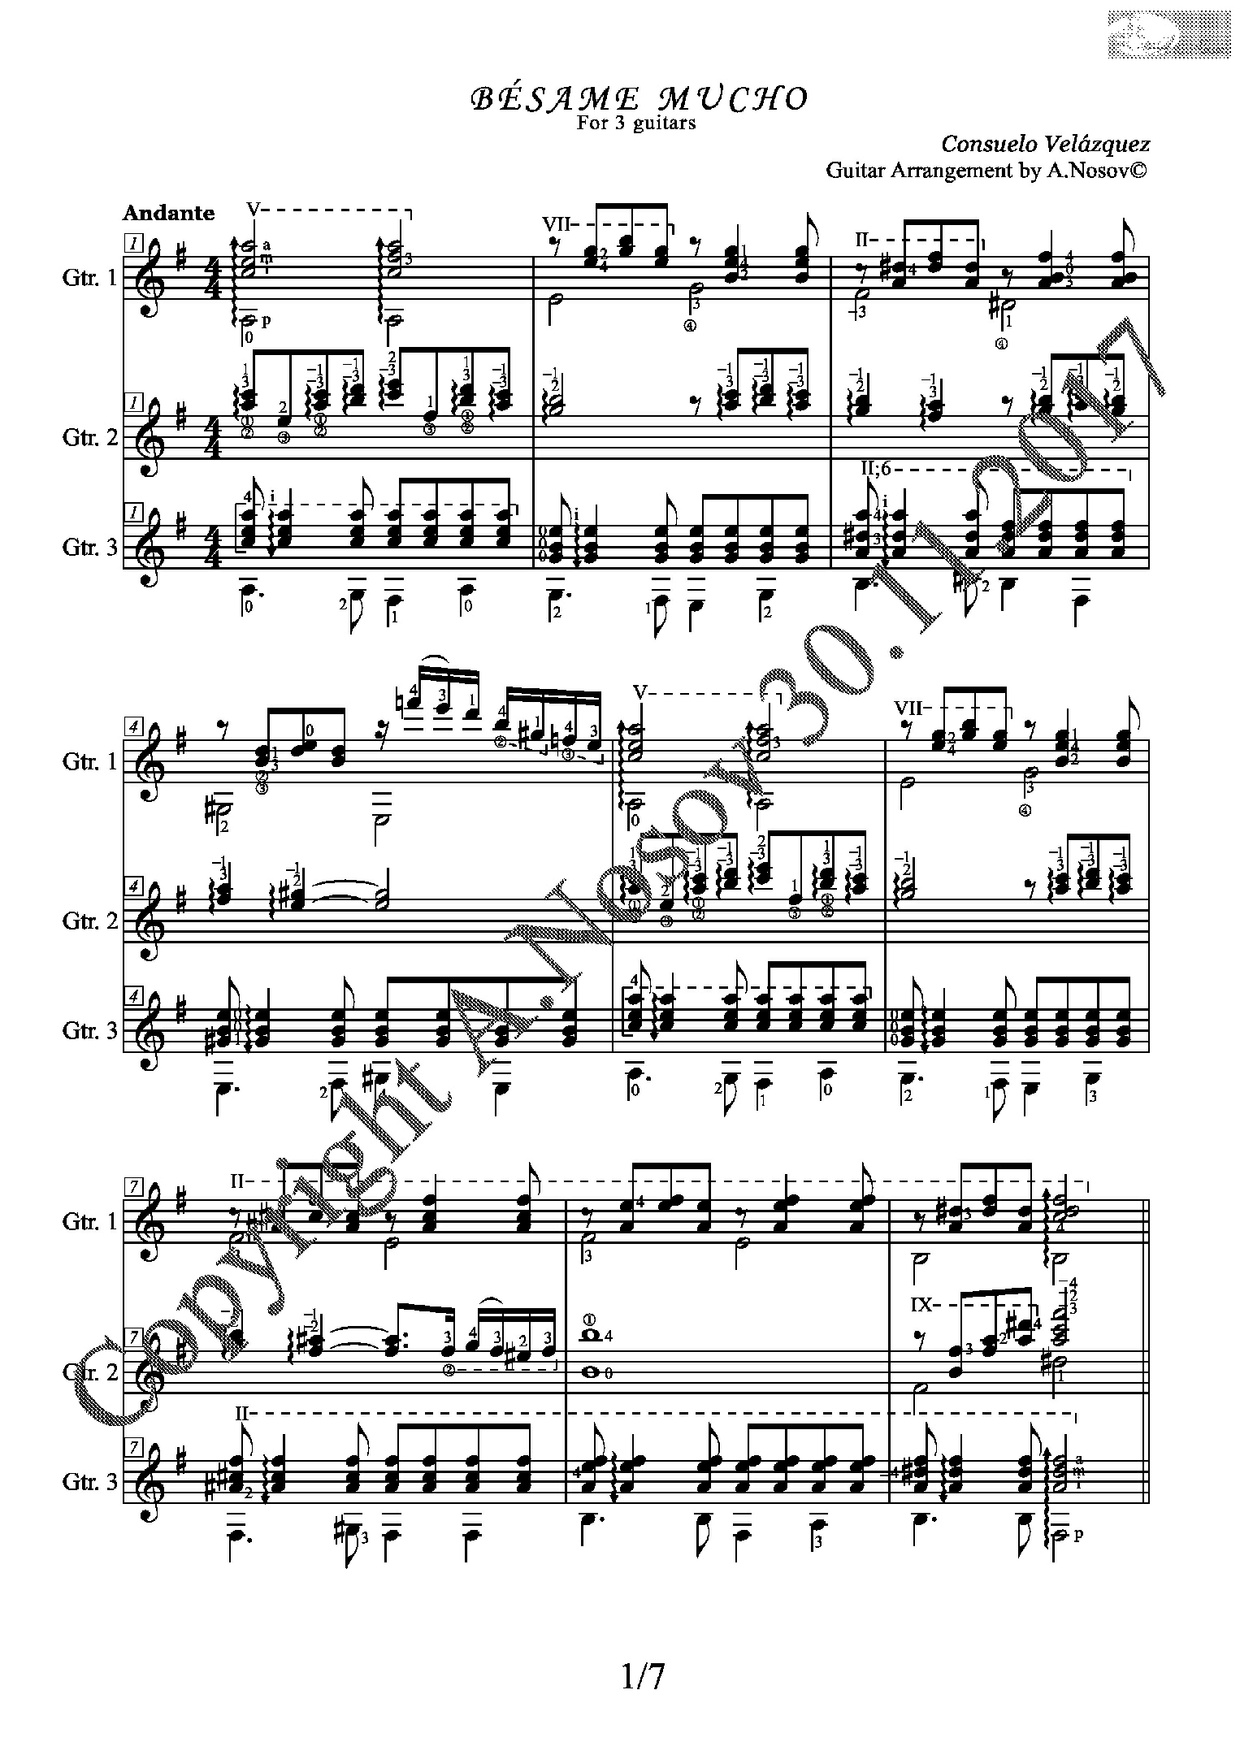 Besame Mucho (C.Velasques) Sheet Music for Guitar Trio